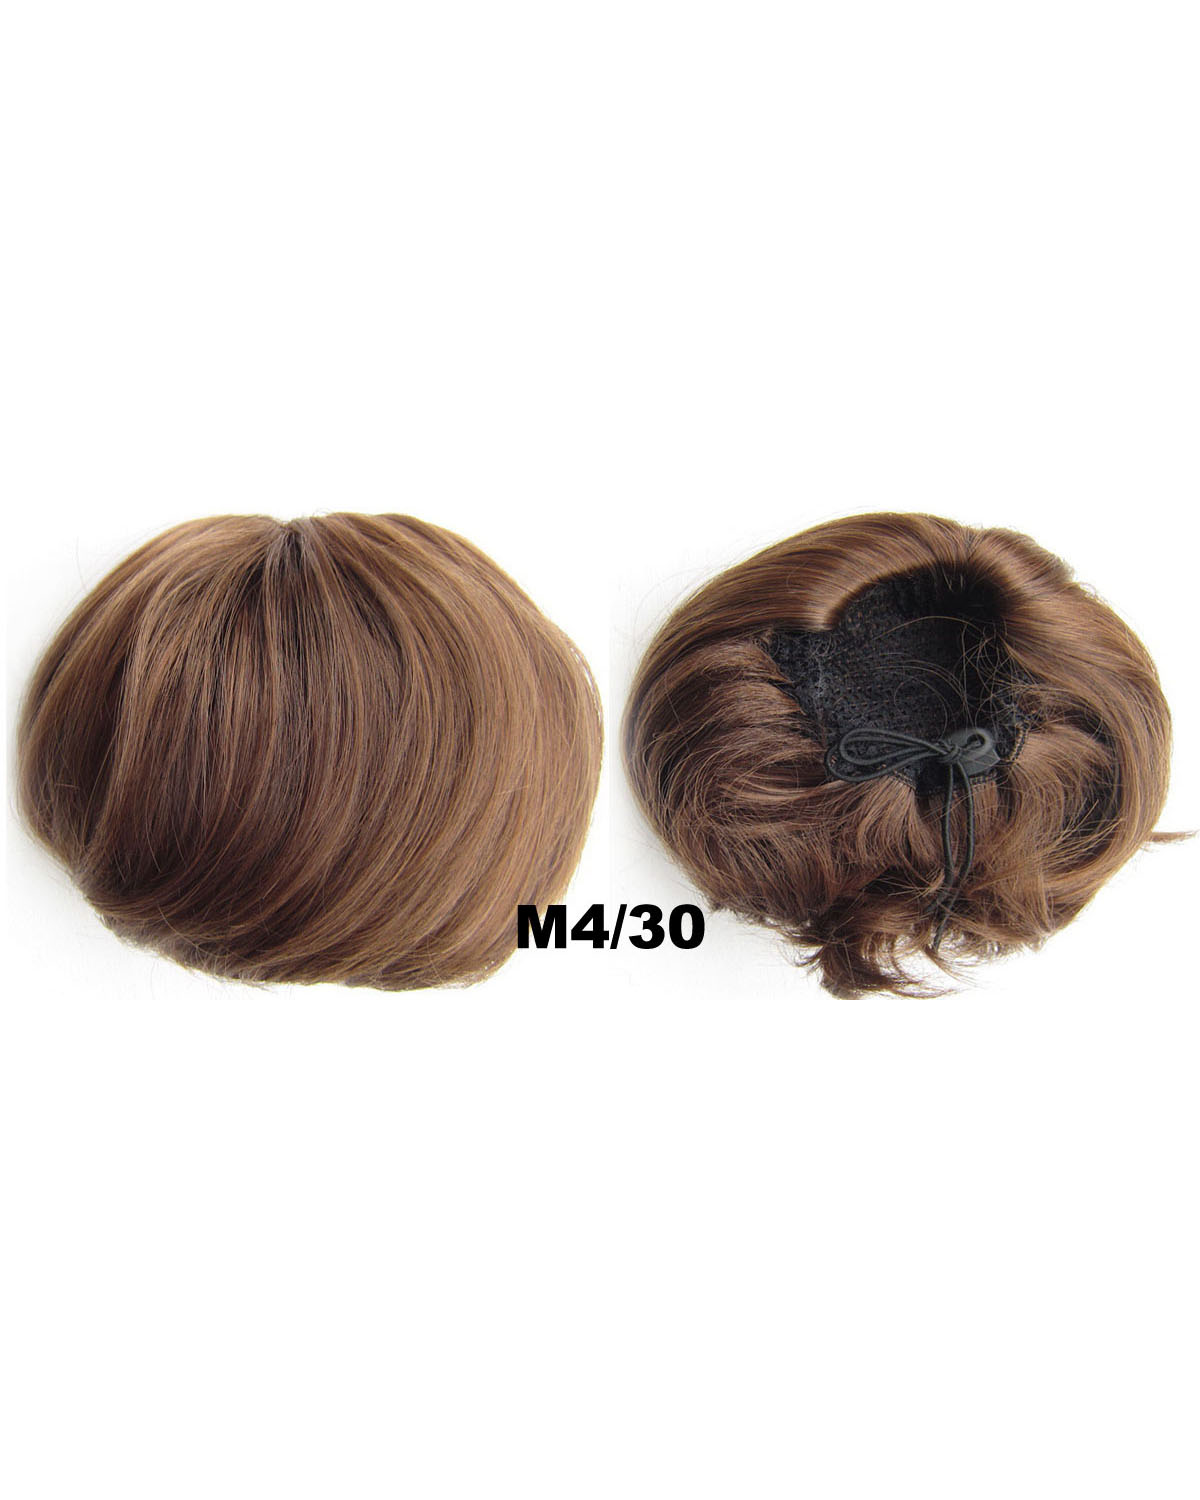 Ladies  Adjustable Straight Short Hair Buns Drawstring Synthetic Hair Extension Bride Scrunchies M4/30